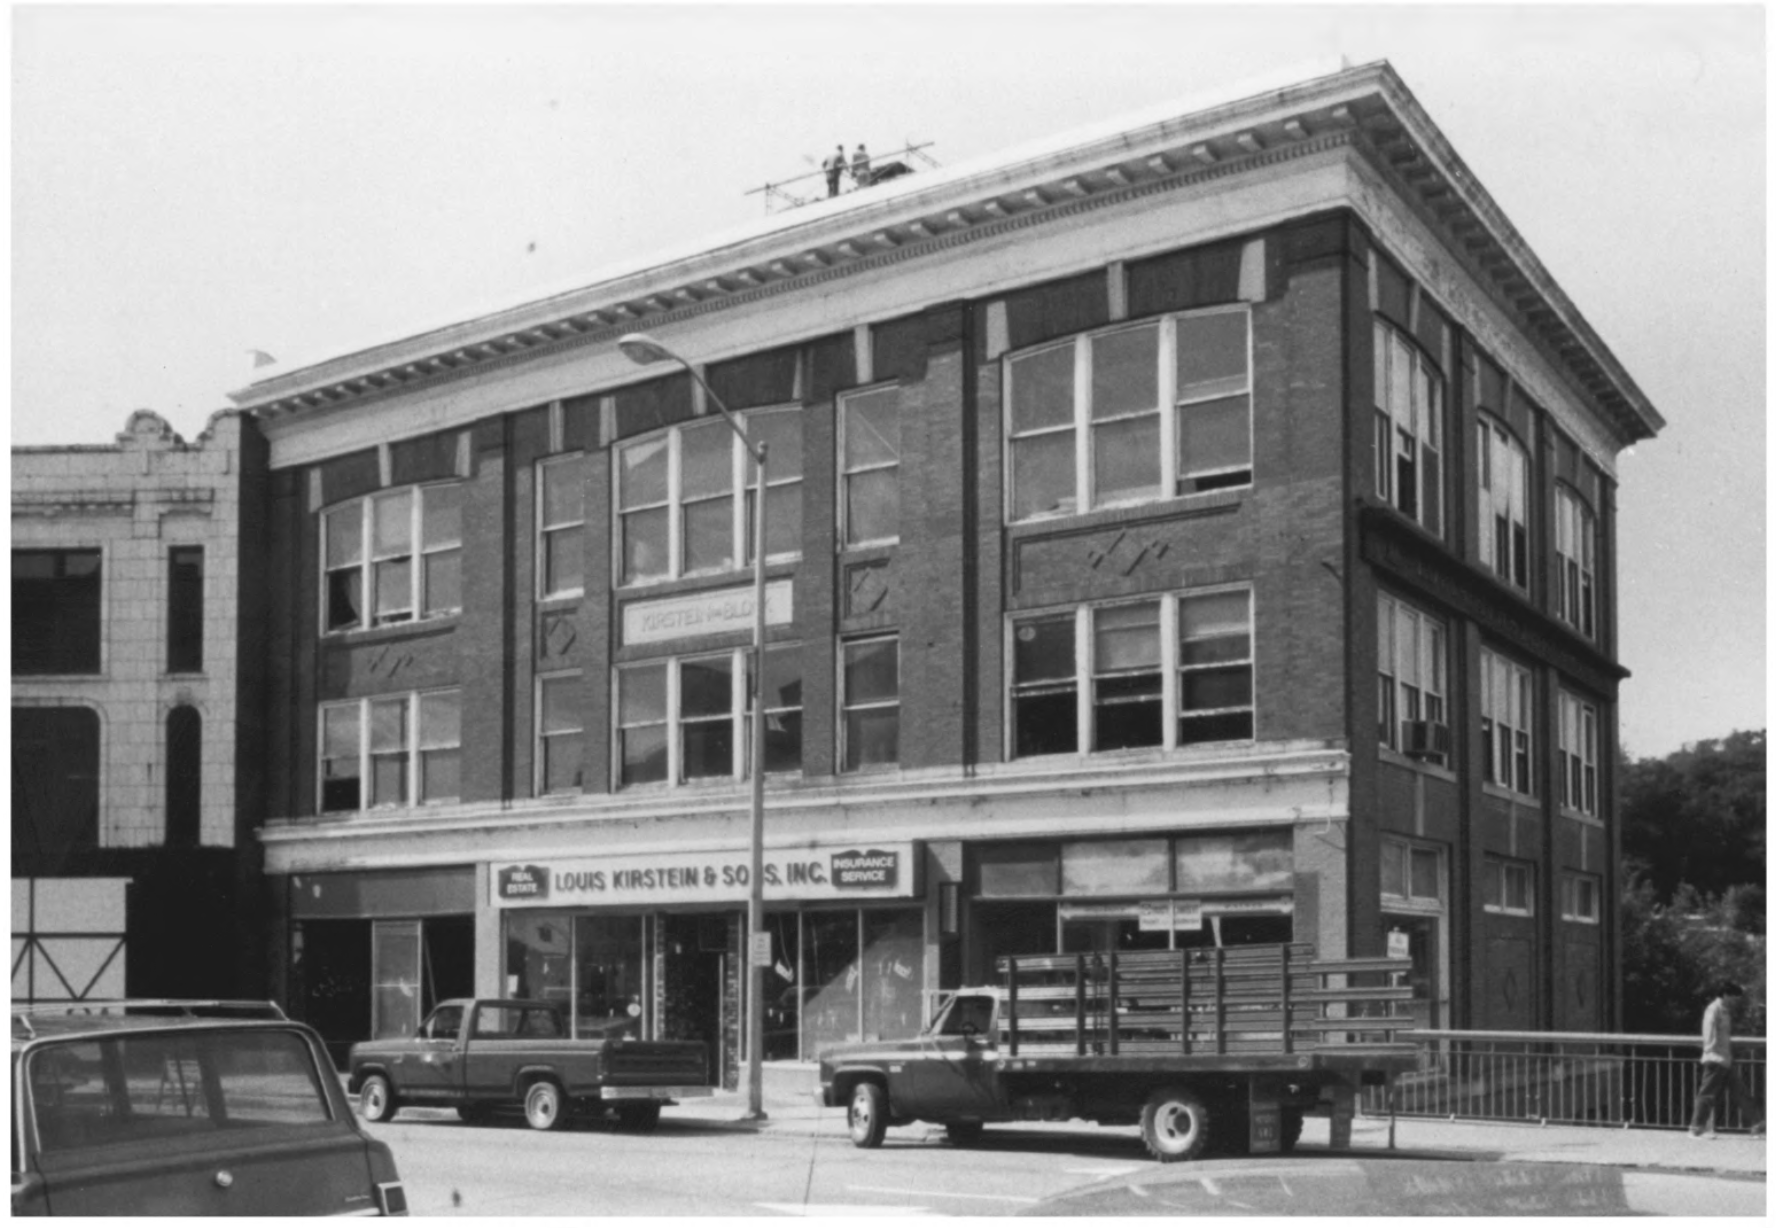 Kirstein Block by Gregory Clancey in October of 1983, Public Domain Photo Provided by NPS